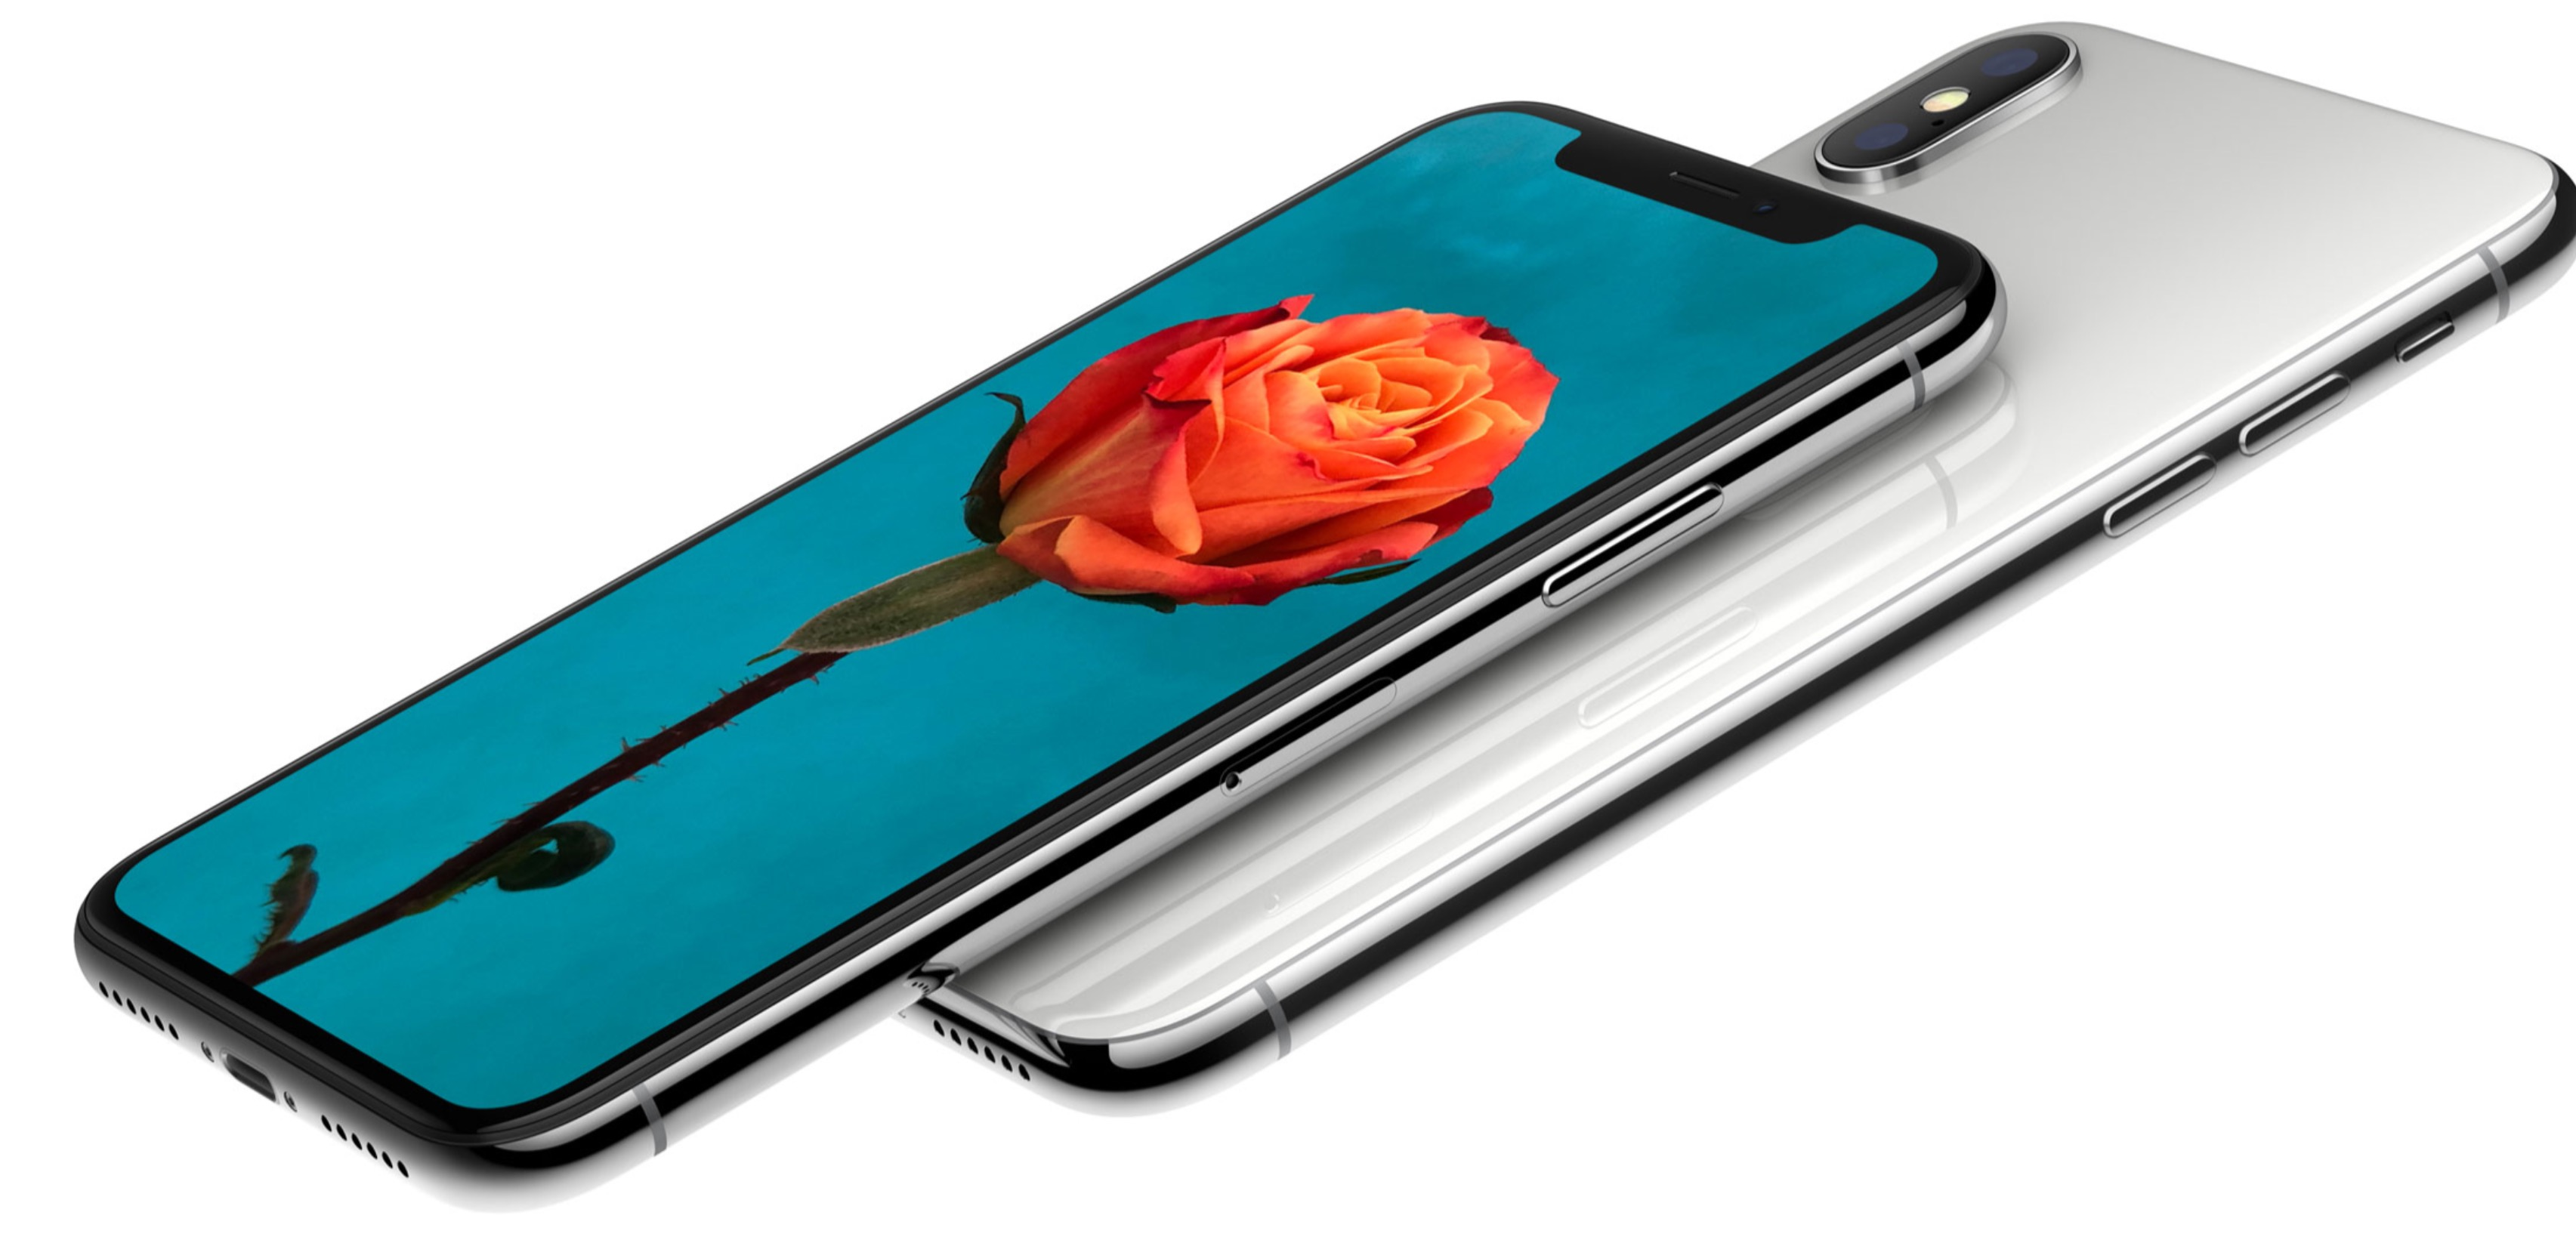 iPhone X durata batteria